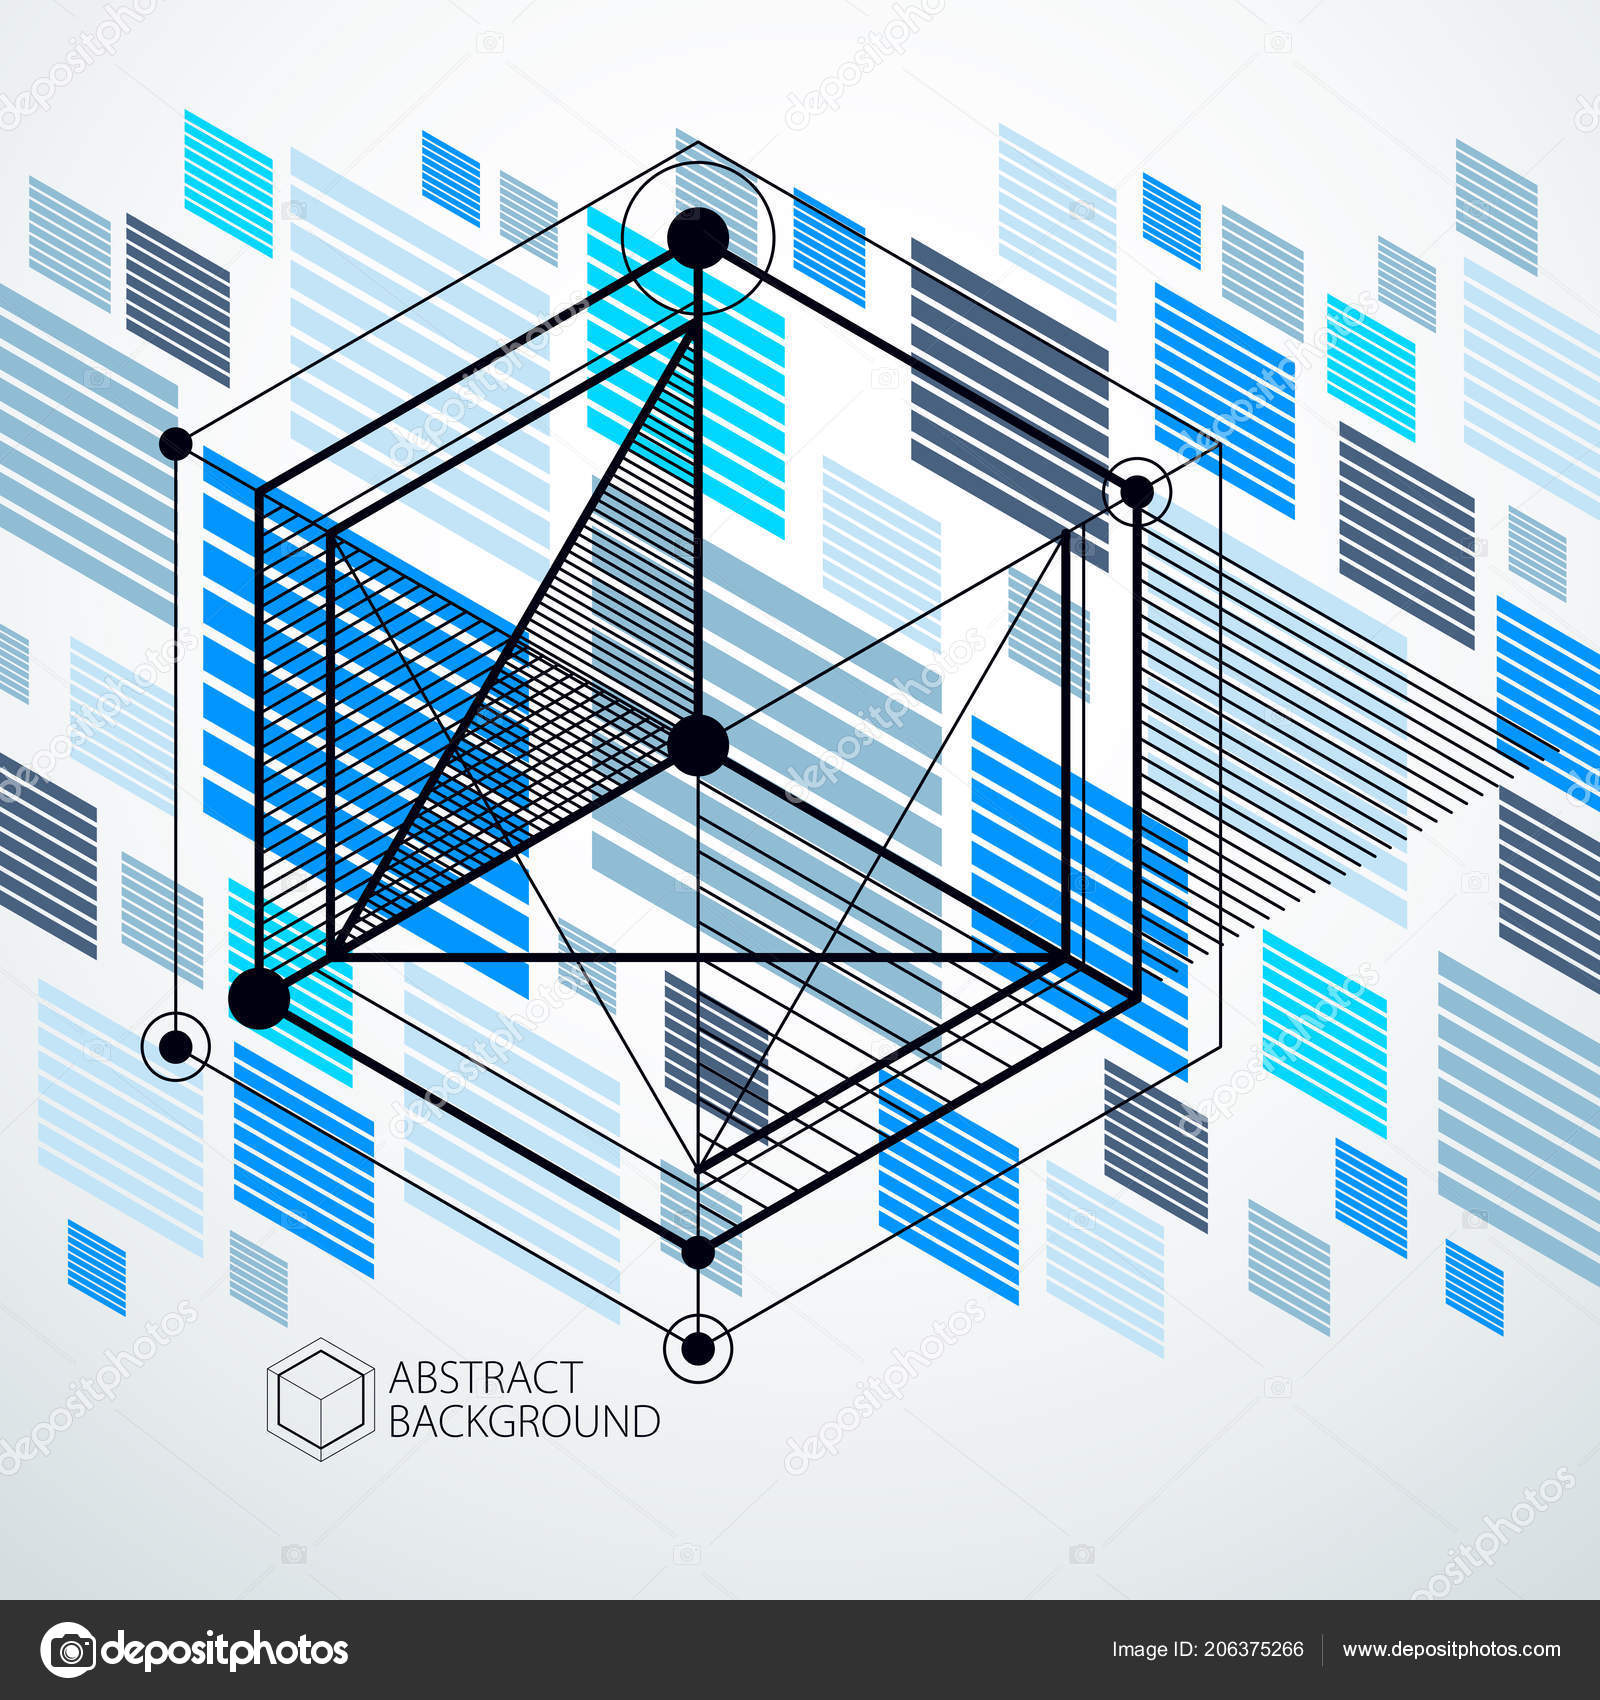 Engineering Technology Vector Blue Wallpaper Made Cubes Lines Engineering Technological Stock Vector C Ostapius 206375266